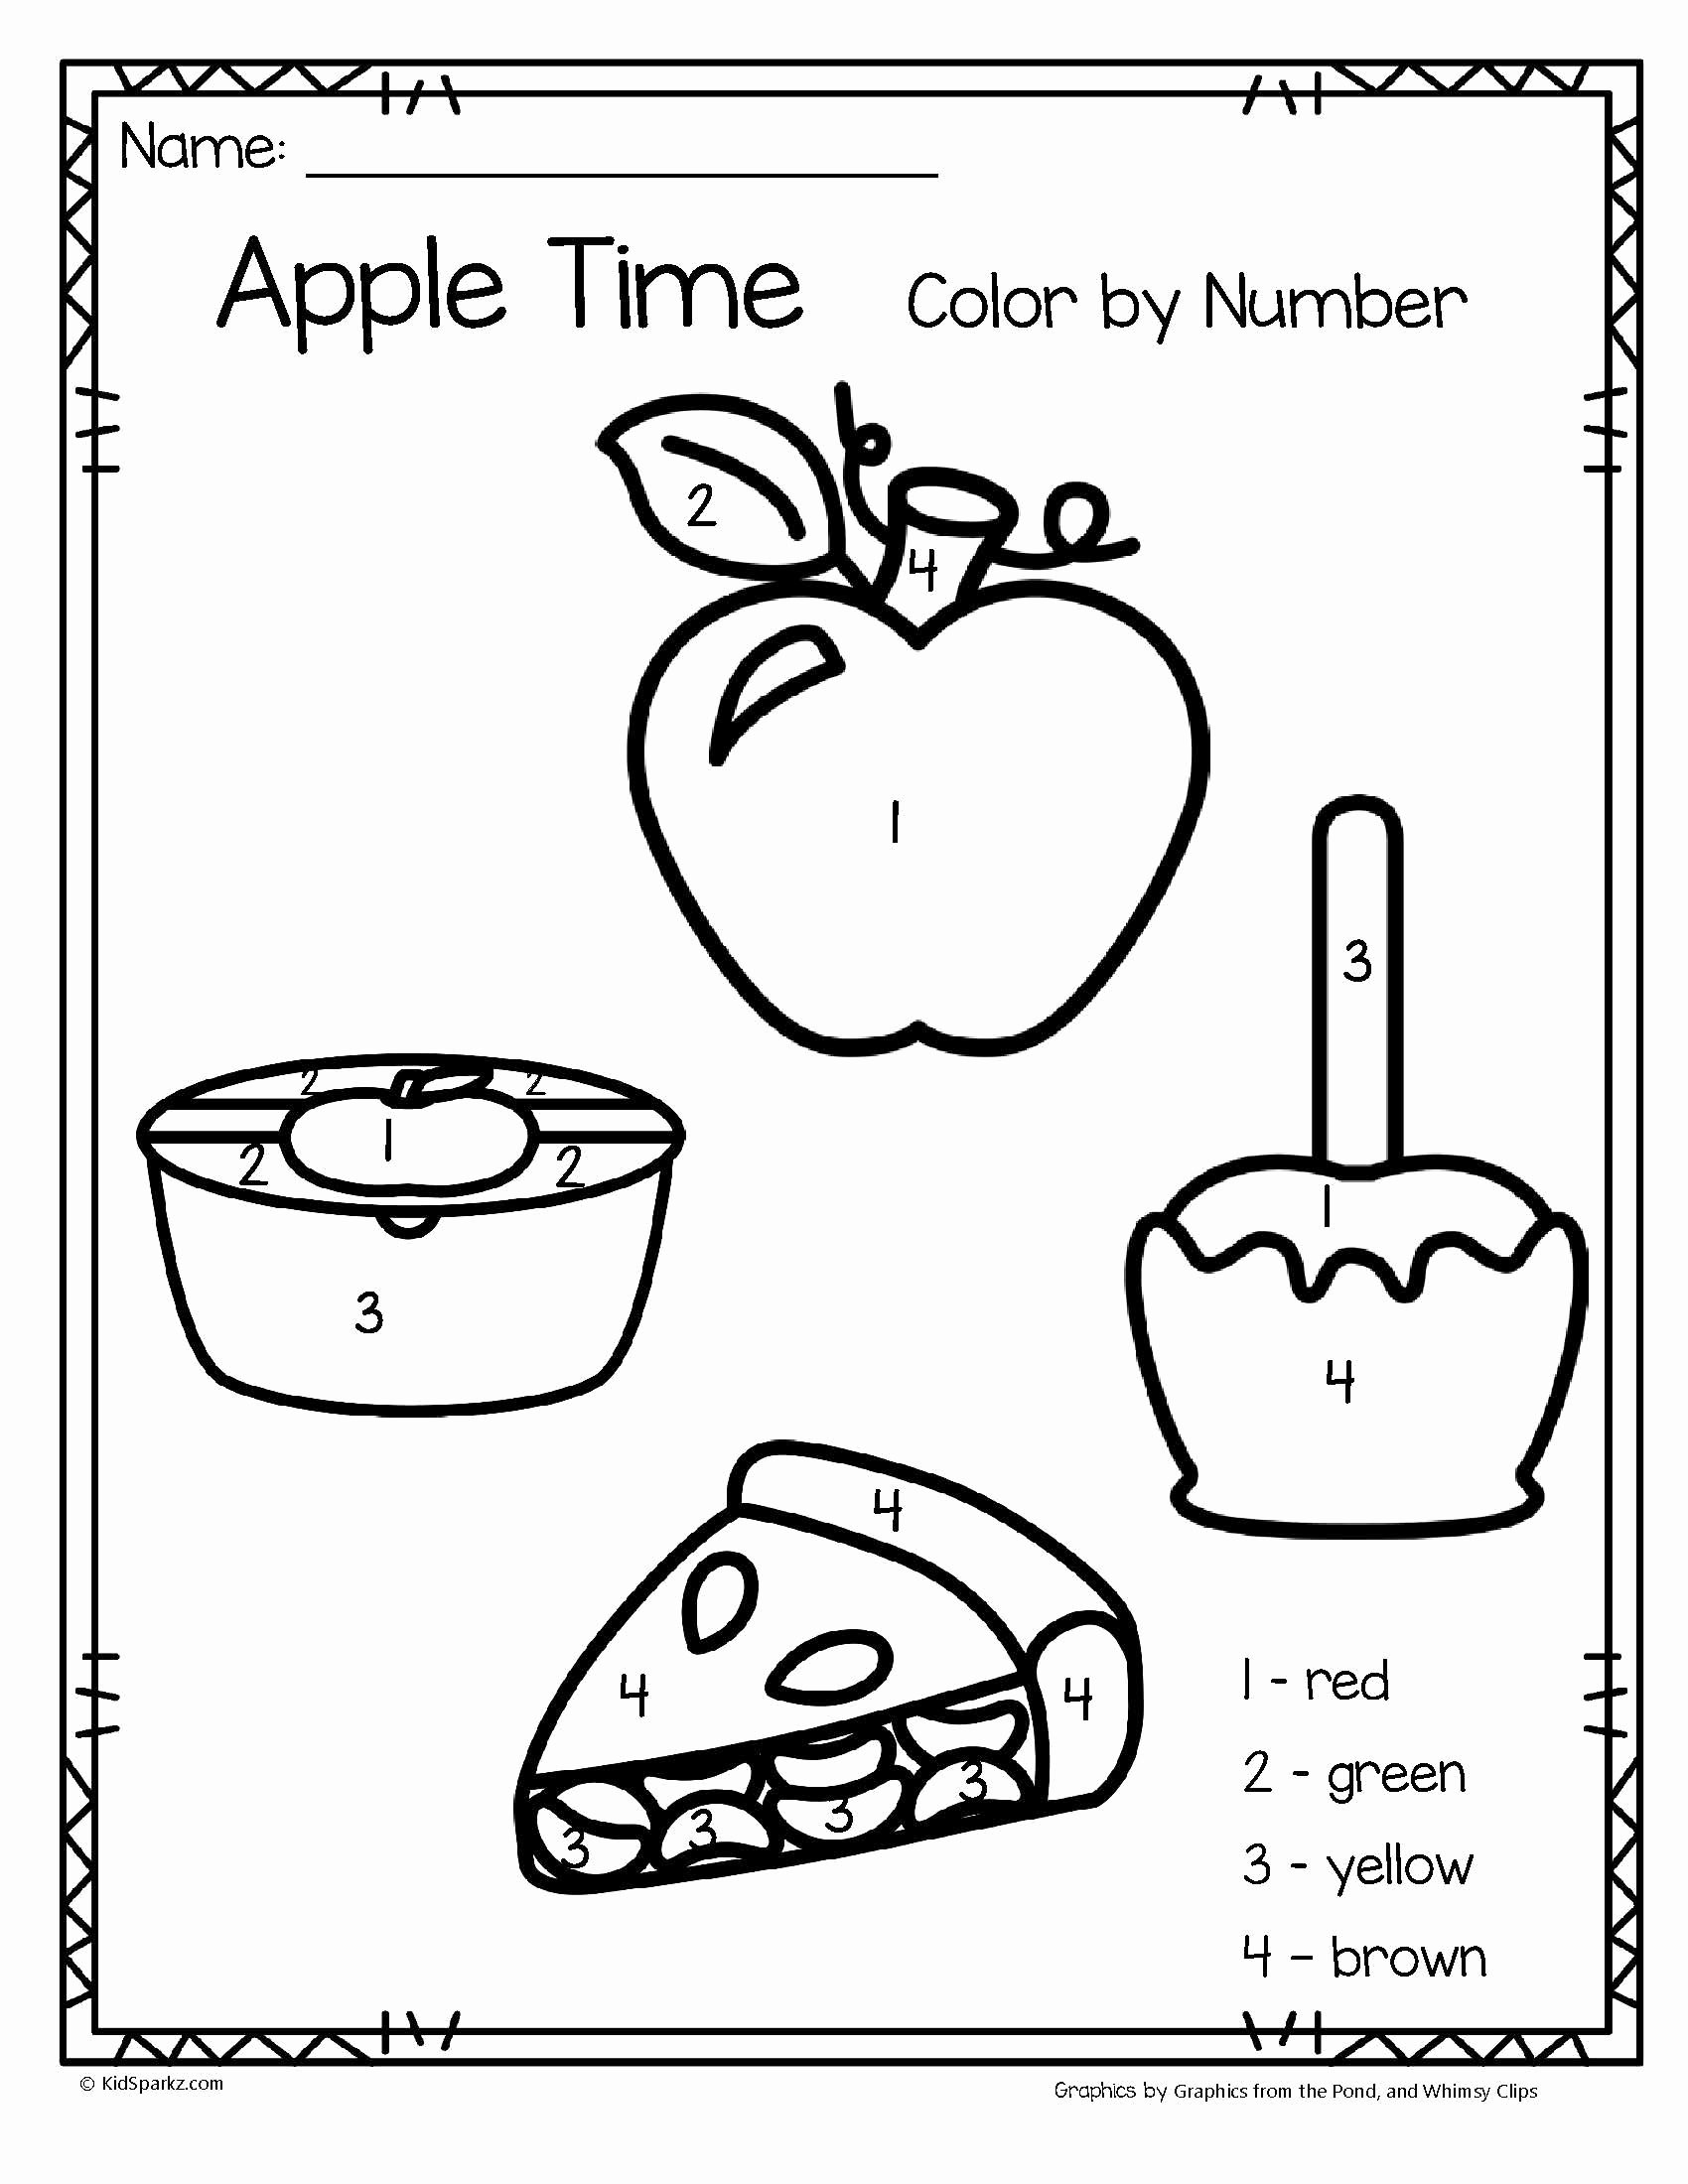 Apple Worksheets for Preschoolers New Worksheets Printable Number Coloring for toddlers Pdf